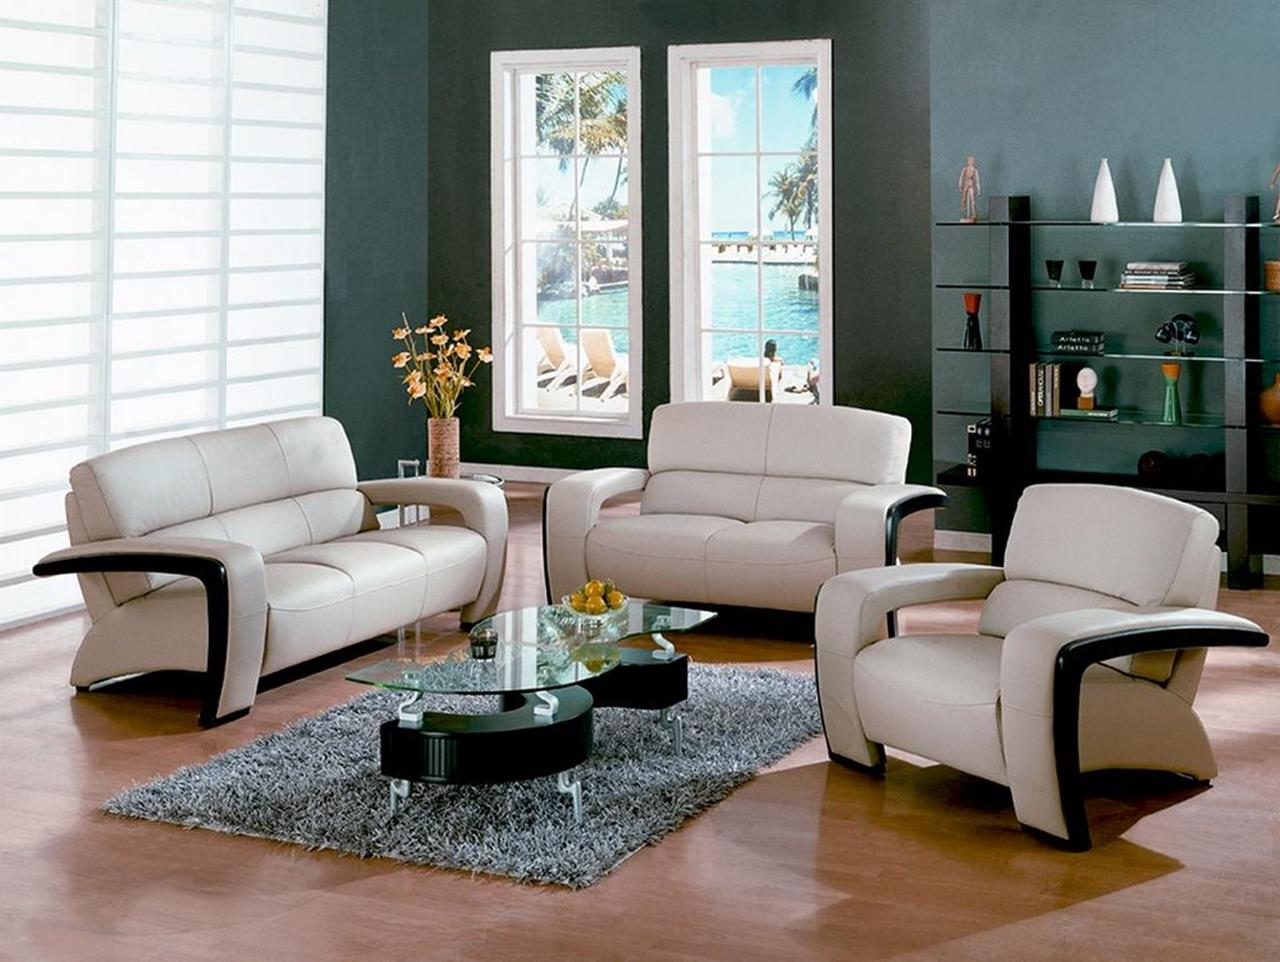 Living Room Furniture Ideas For Small Spaces 30